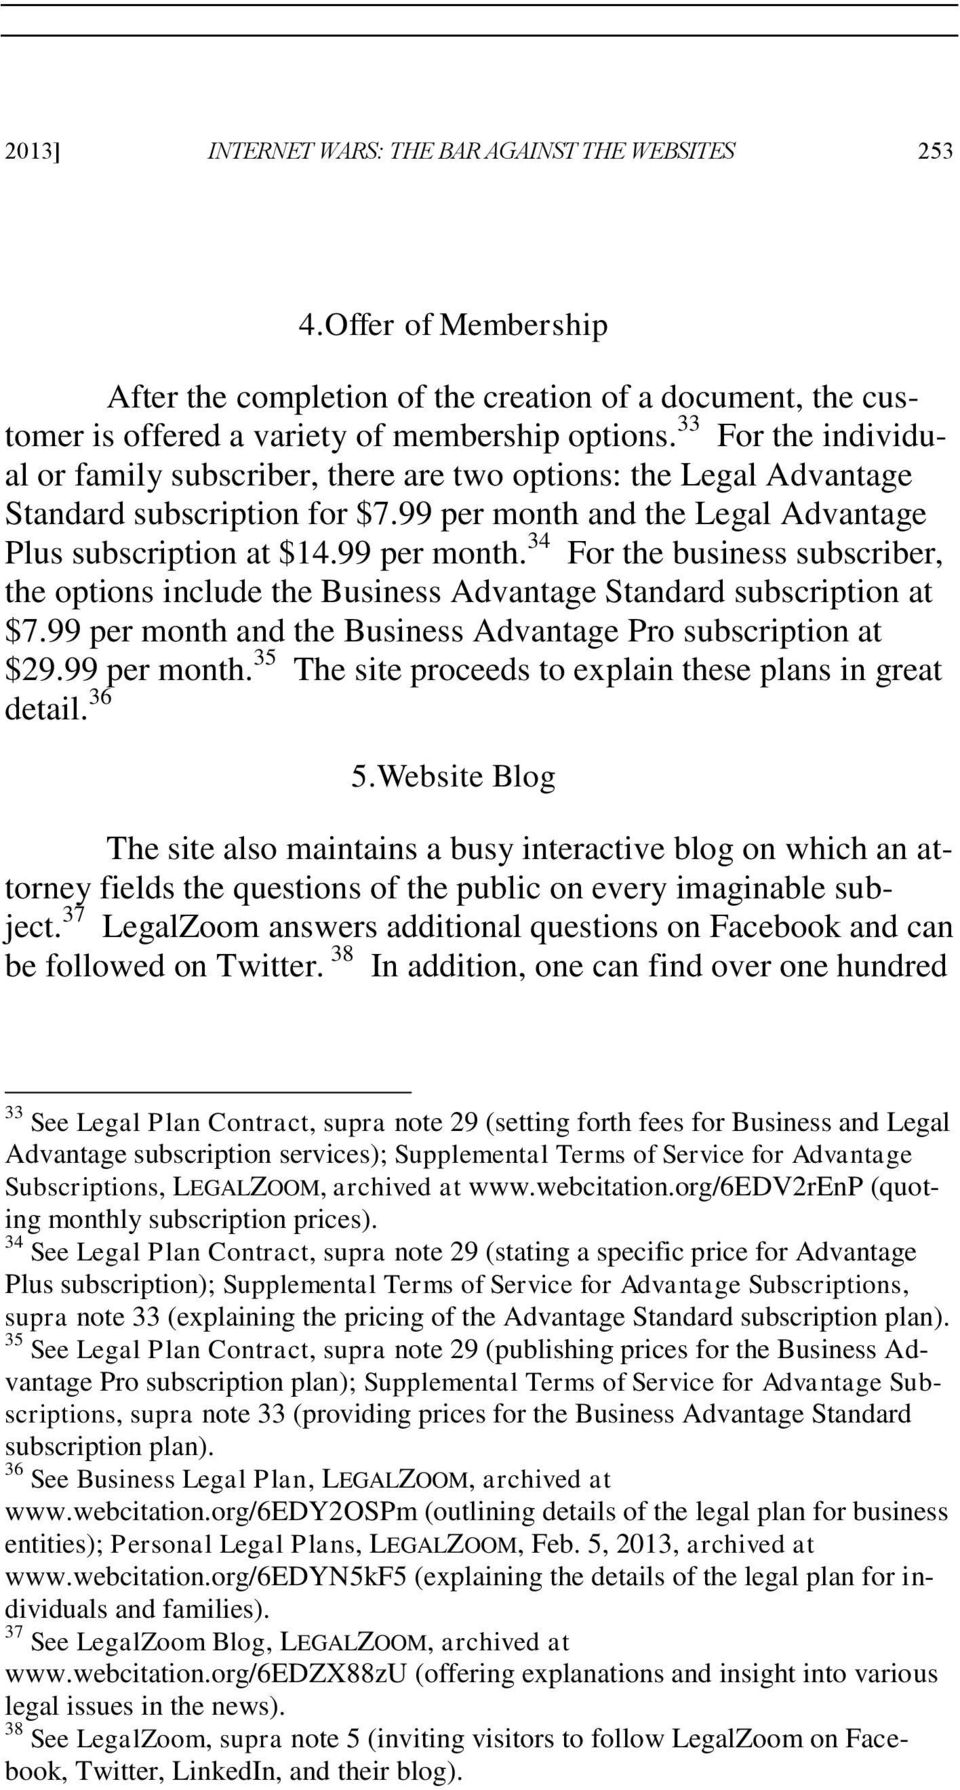 and the Legal Advantage Plus subscription at $14.99 per month. 34 For the business subscriber, the options include the Business Advantage Standard subscription at $7.